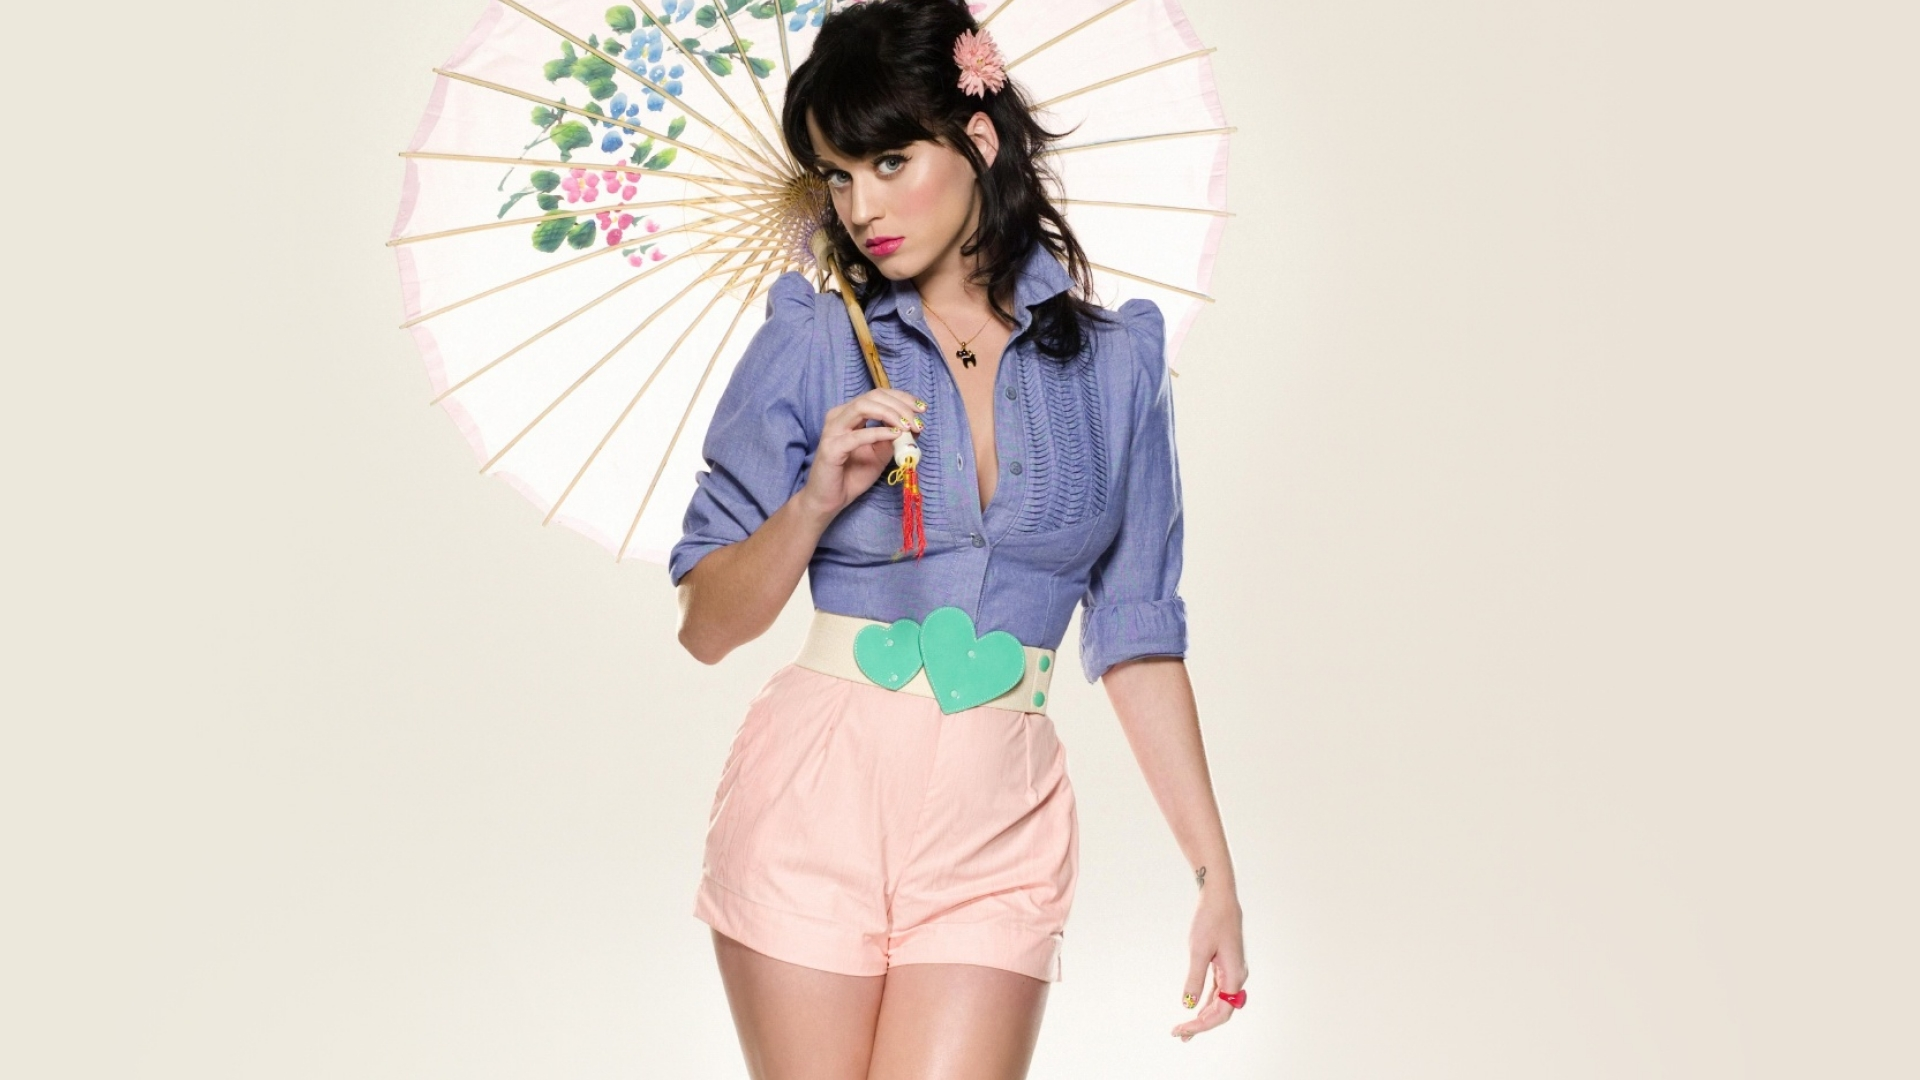 Katy Perry innocent wallpaper